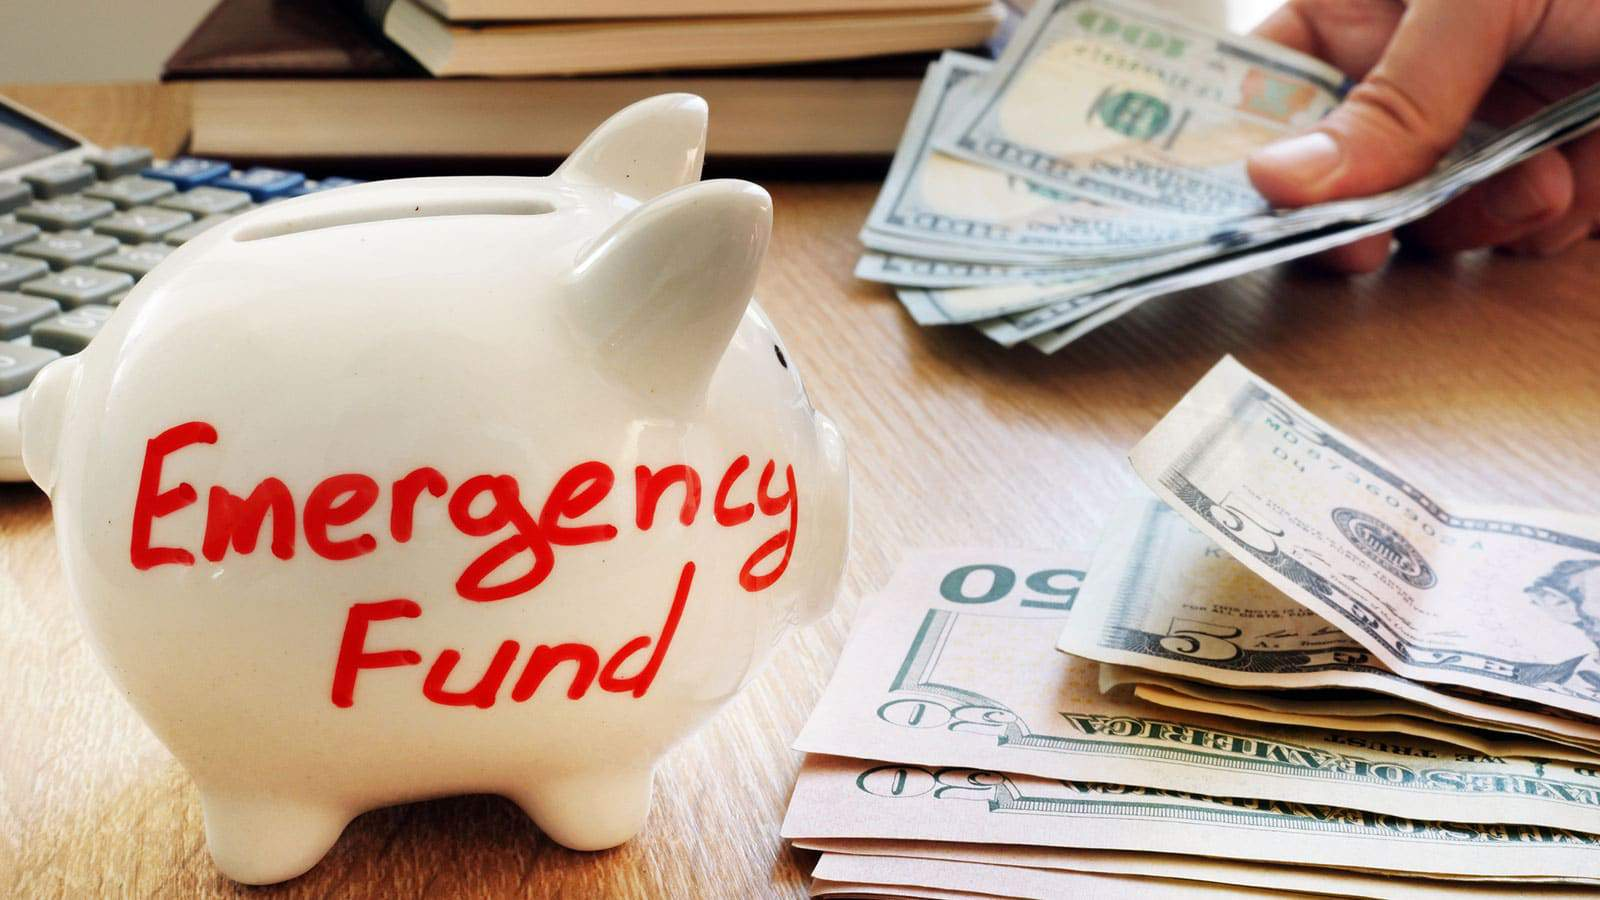 6 Tips On Creating An Emergency Fund